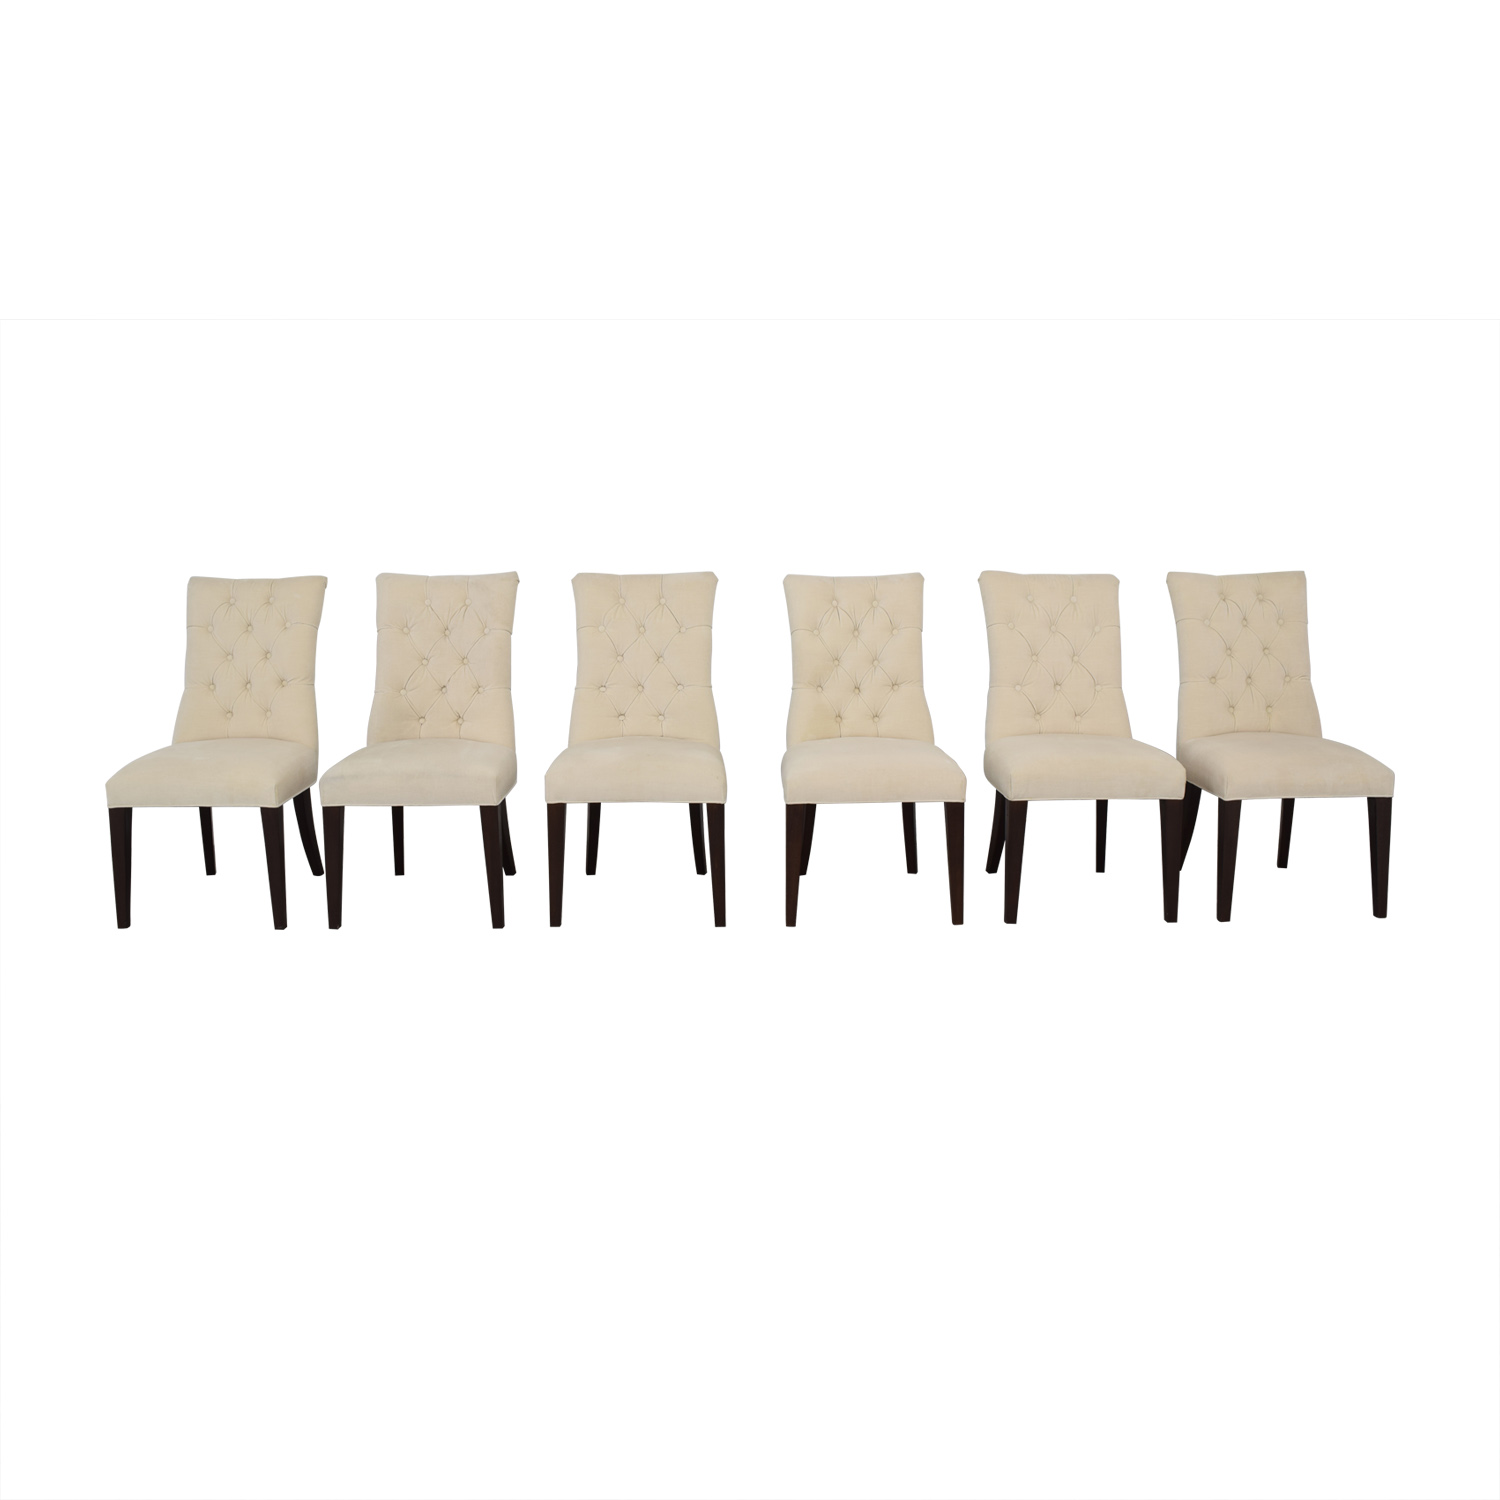 Restoration Hardware Restoration Hardware Martine Tufted Beige Dining Chairs price